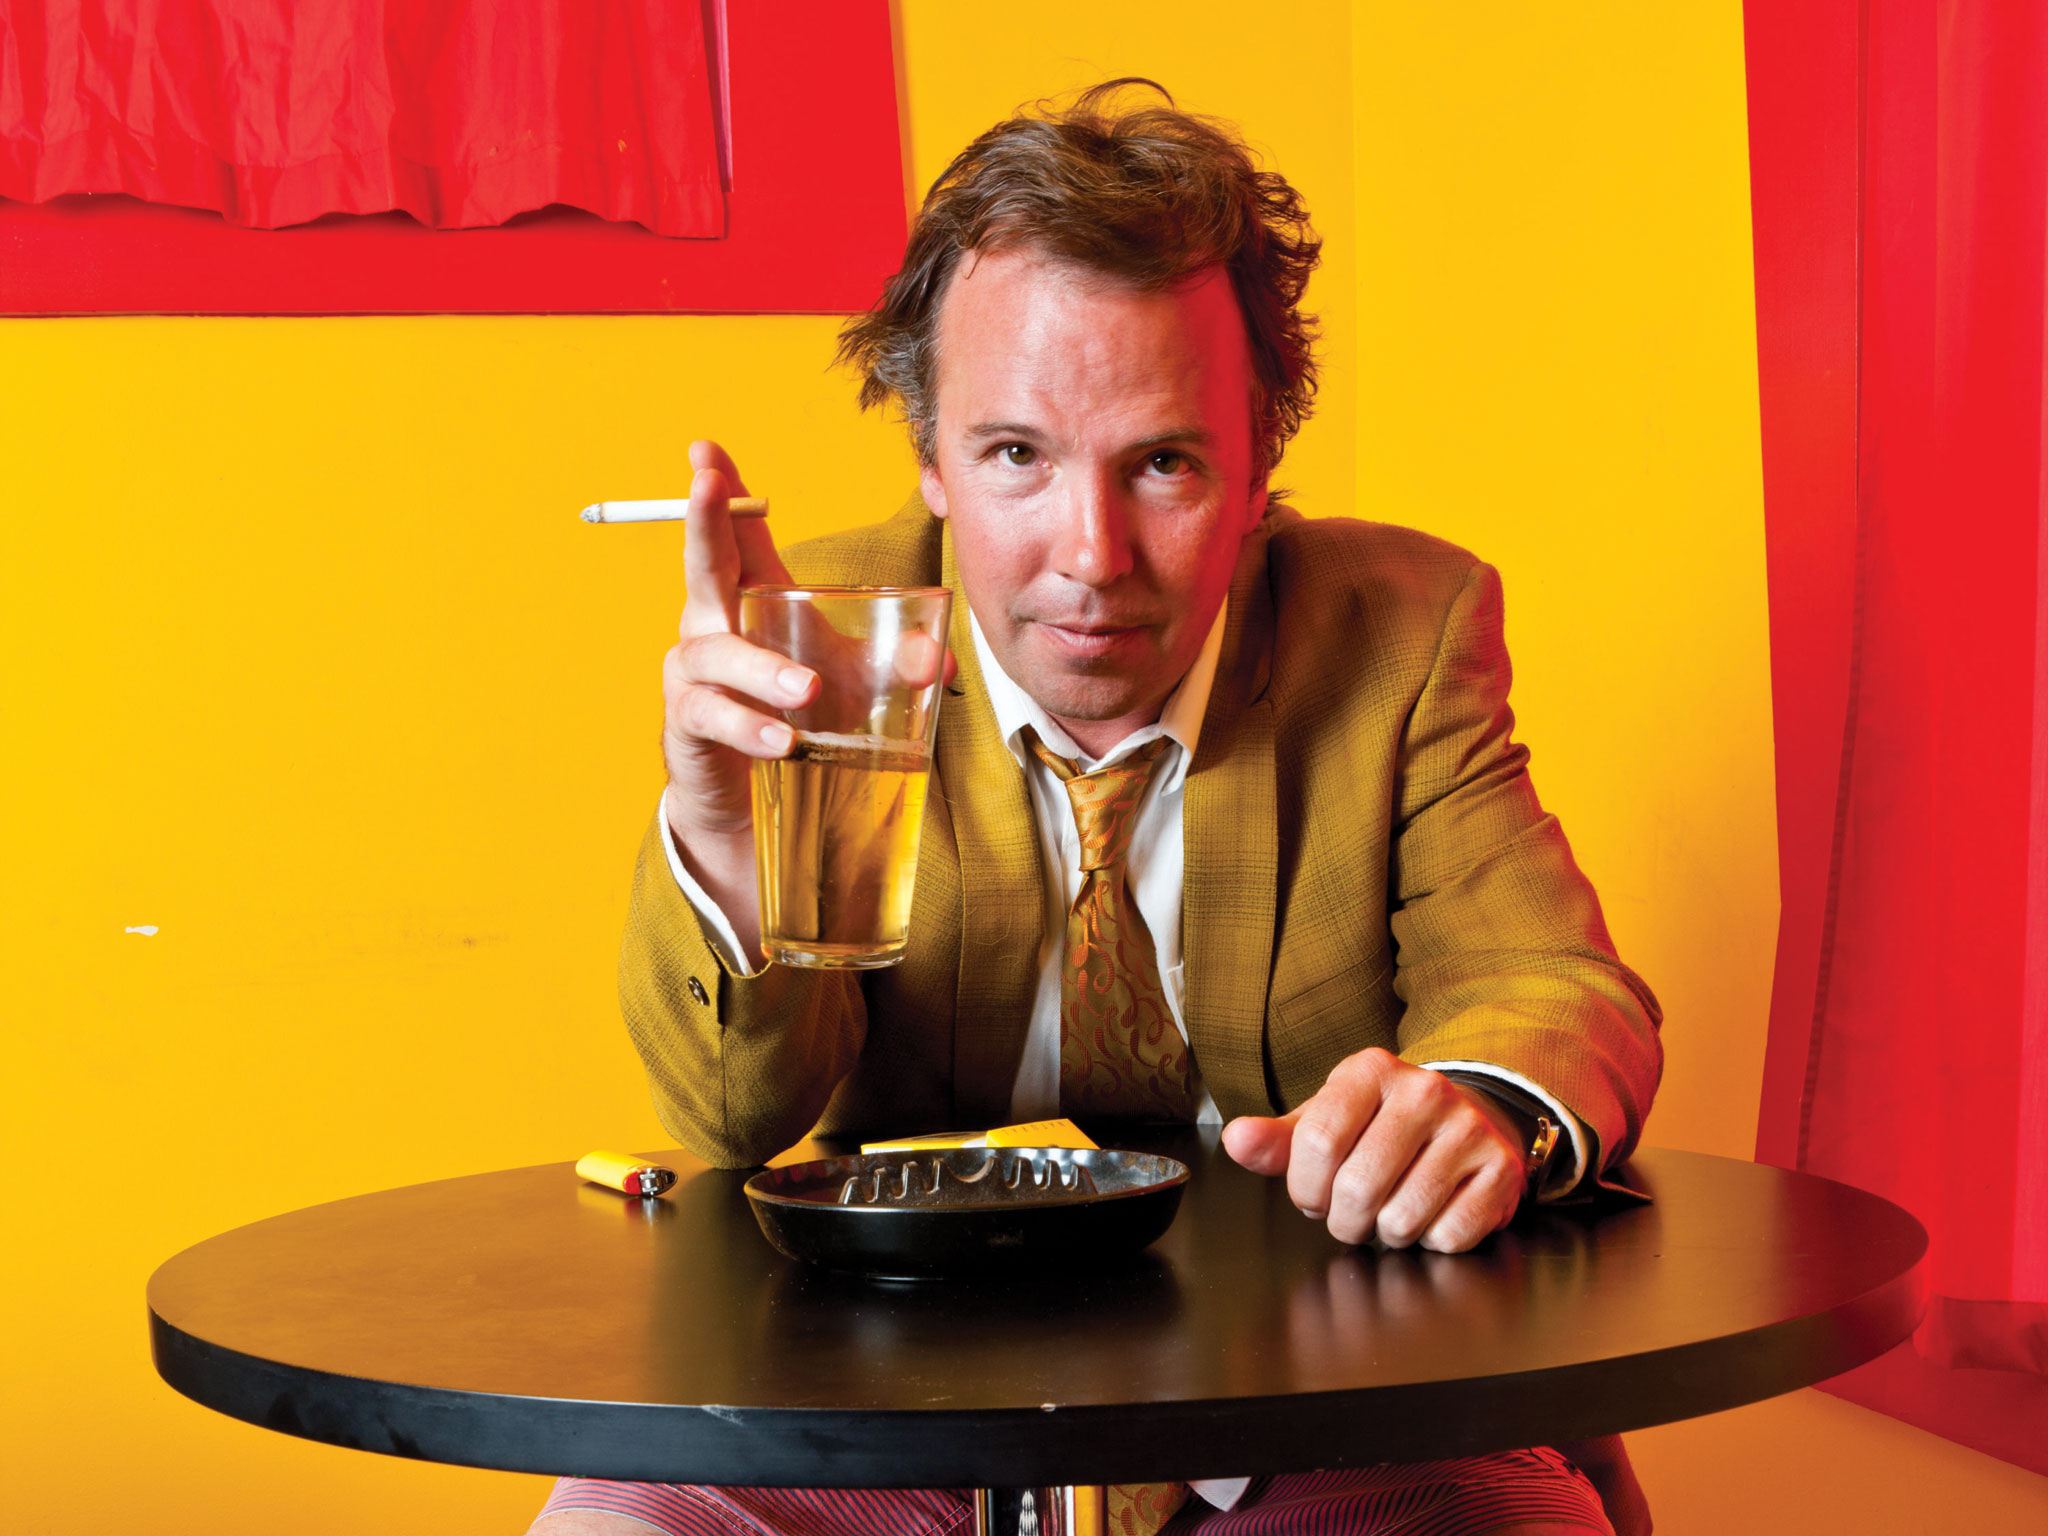 doug-stanhope-press.jpg